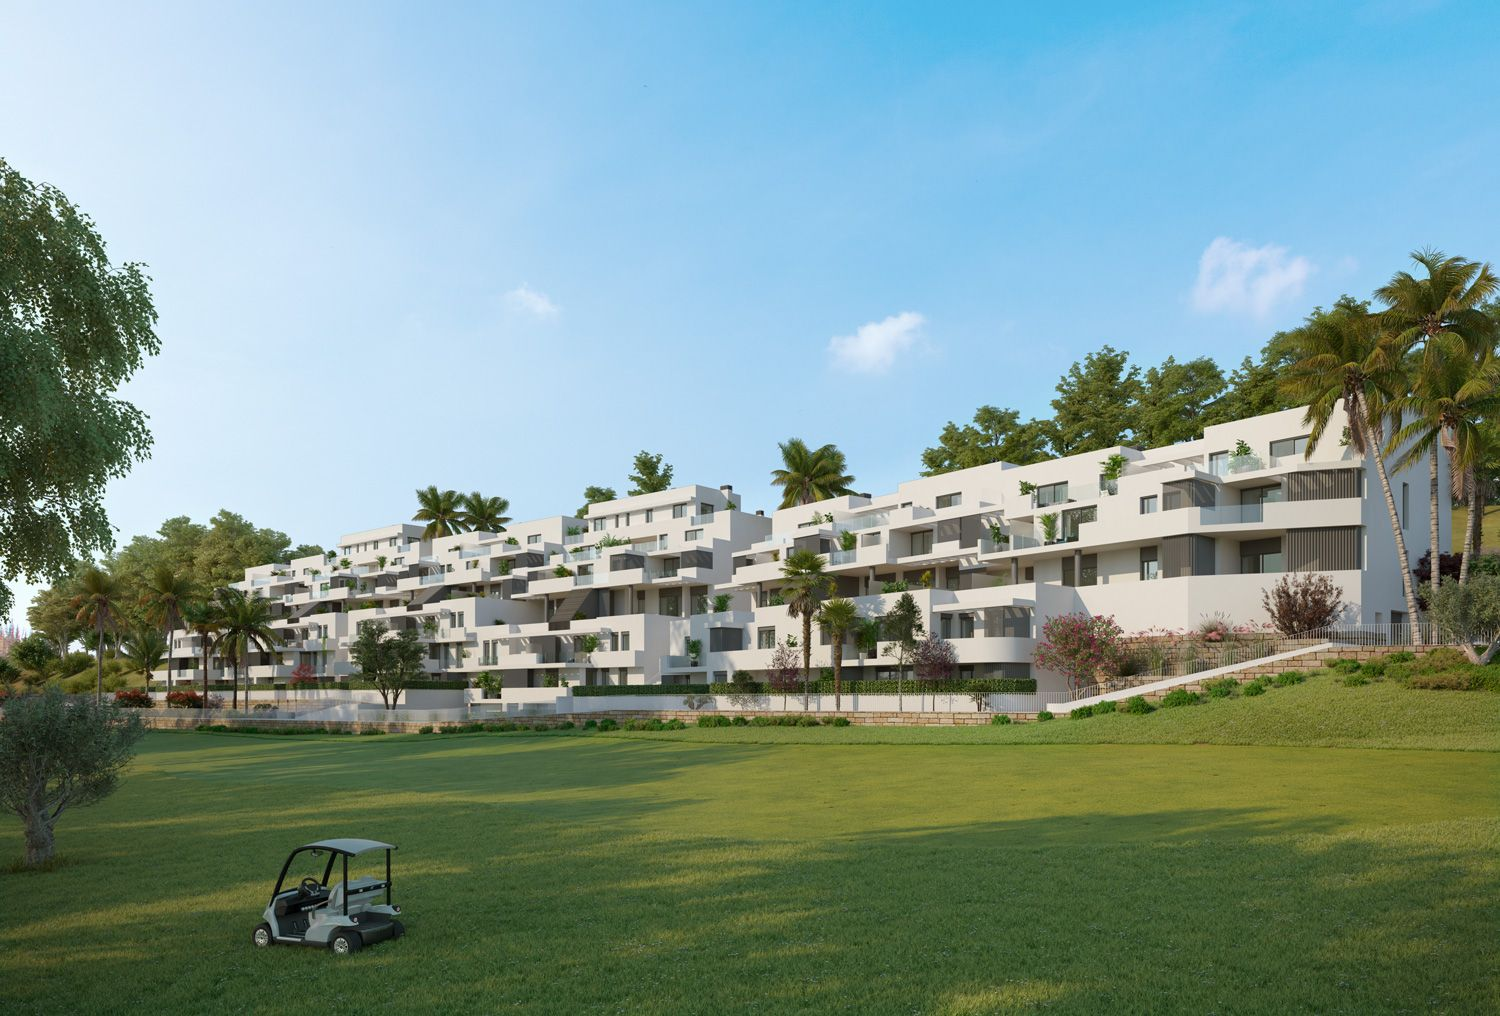 Apartments with views over golf courses in Estepona 1